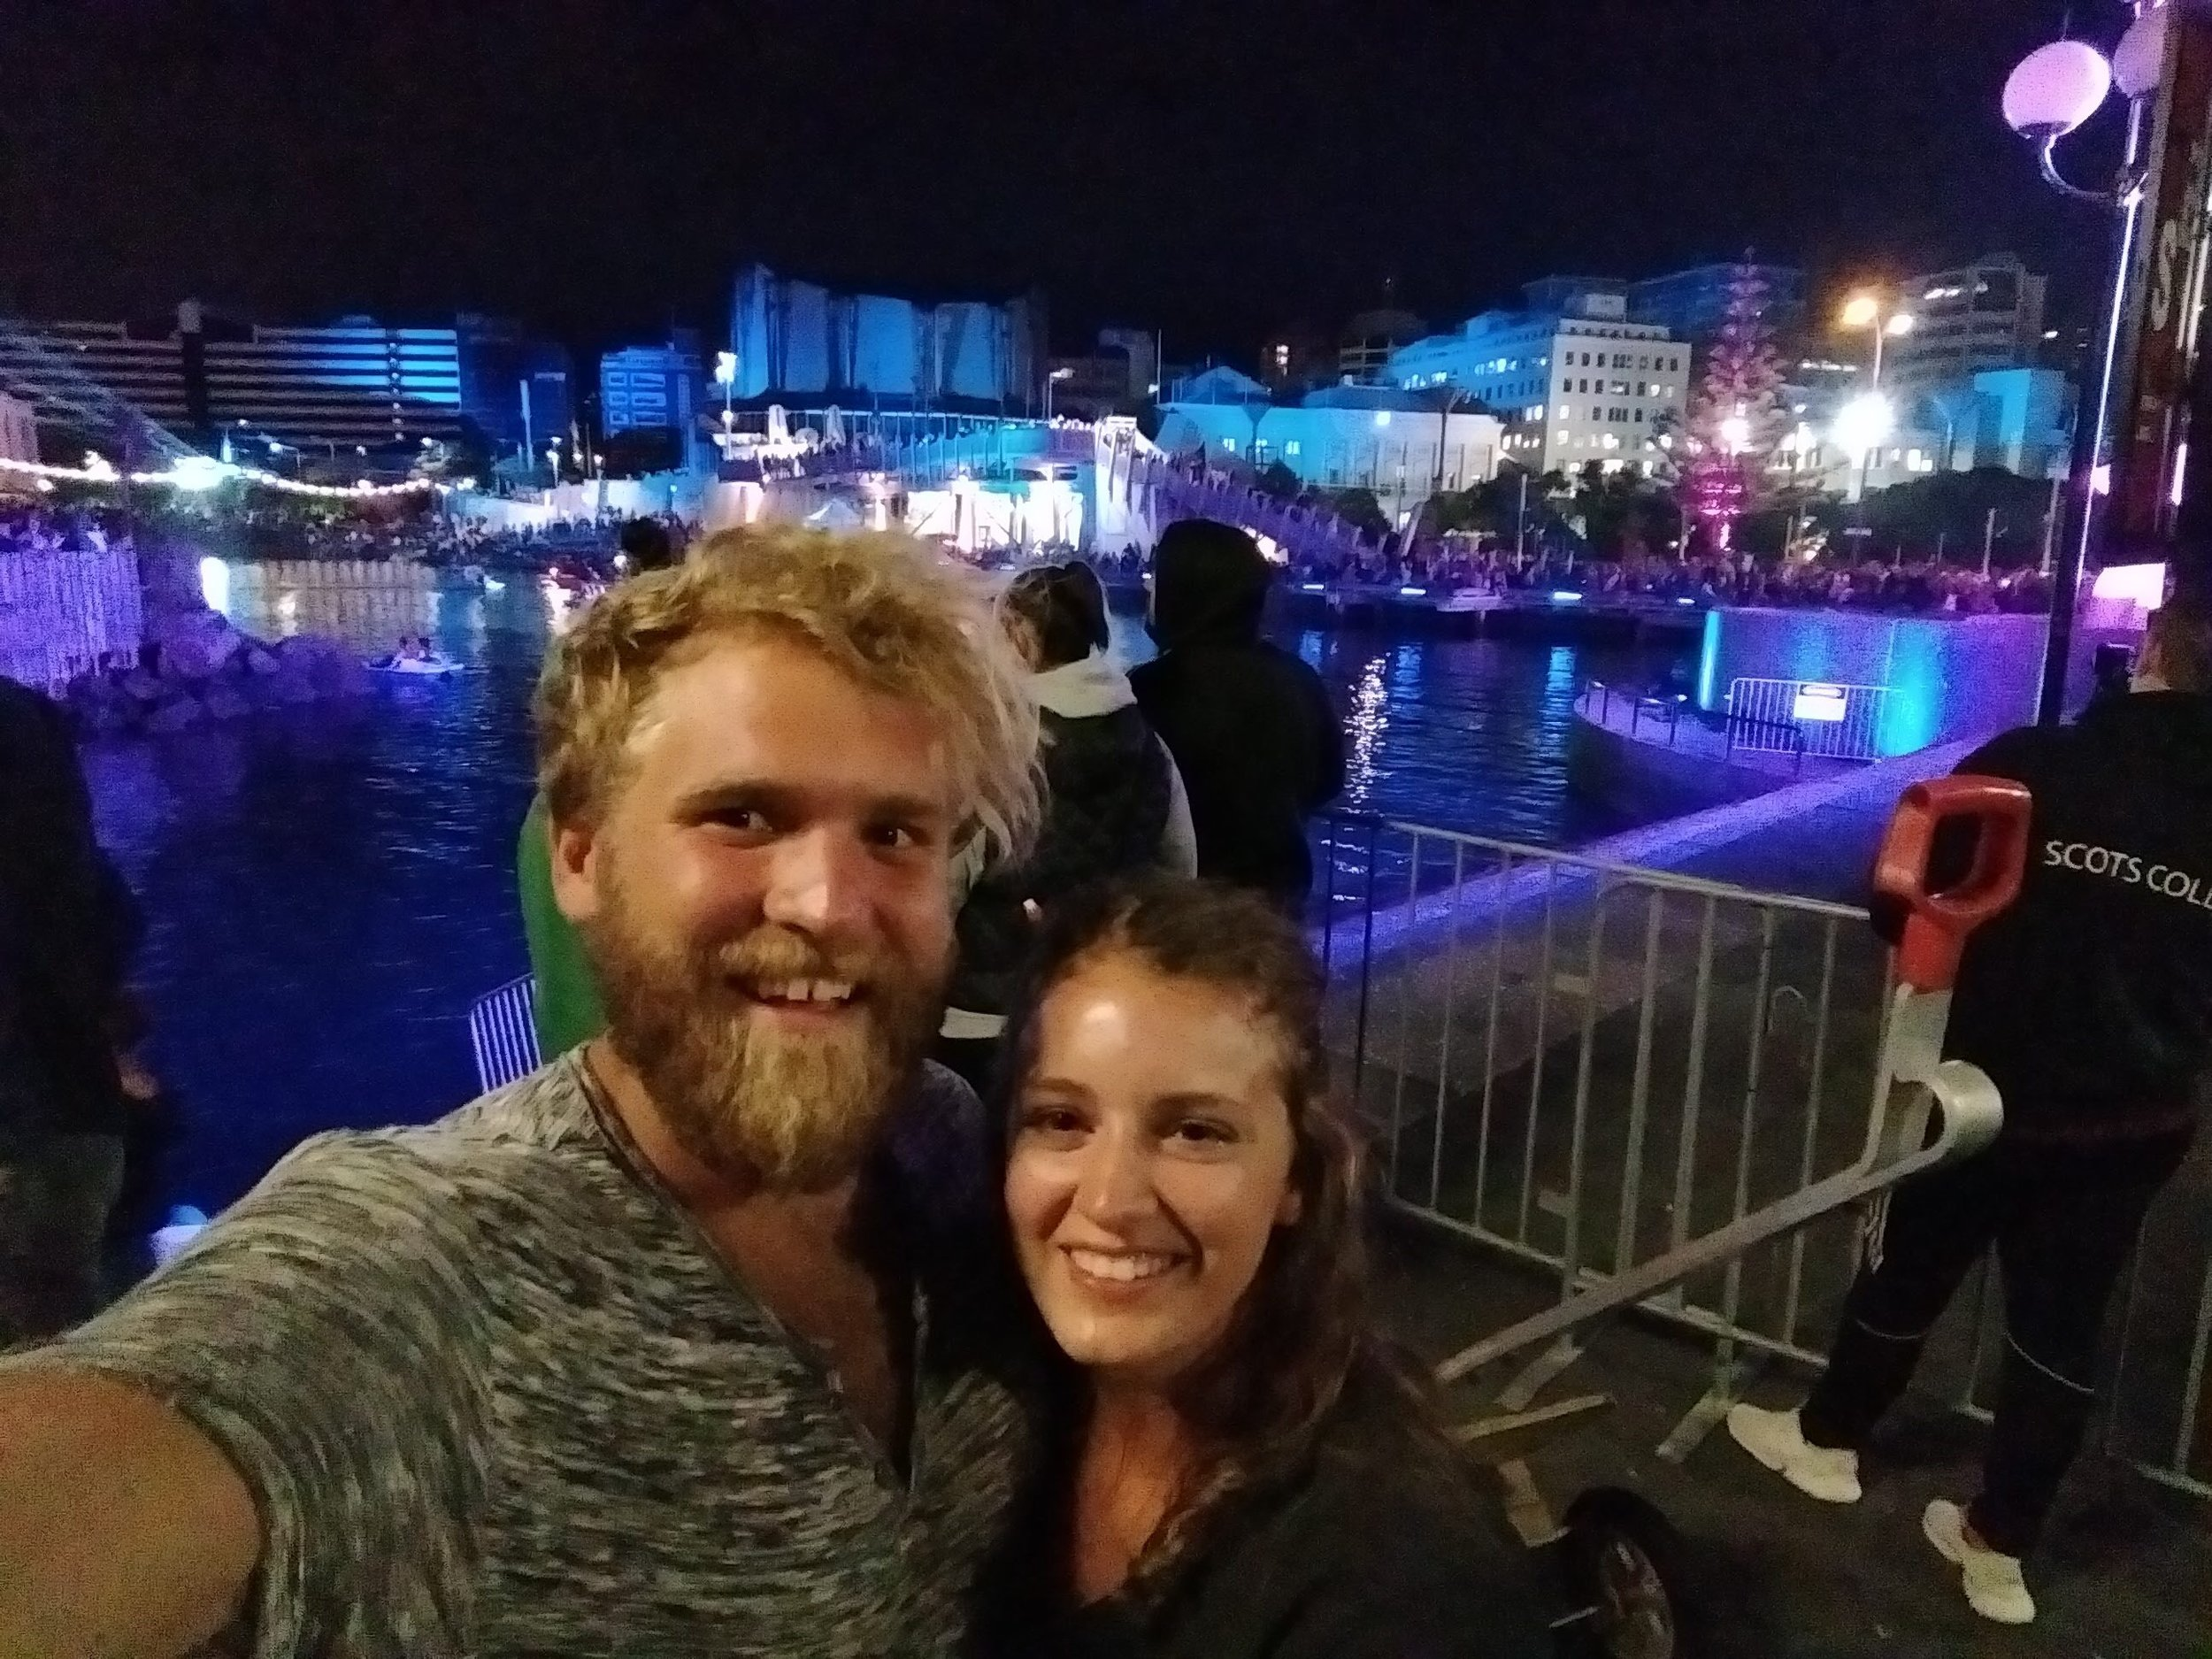 The concert on the boardwalk on New Years Eve!